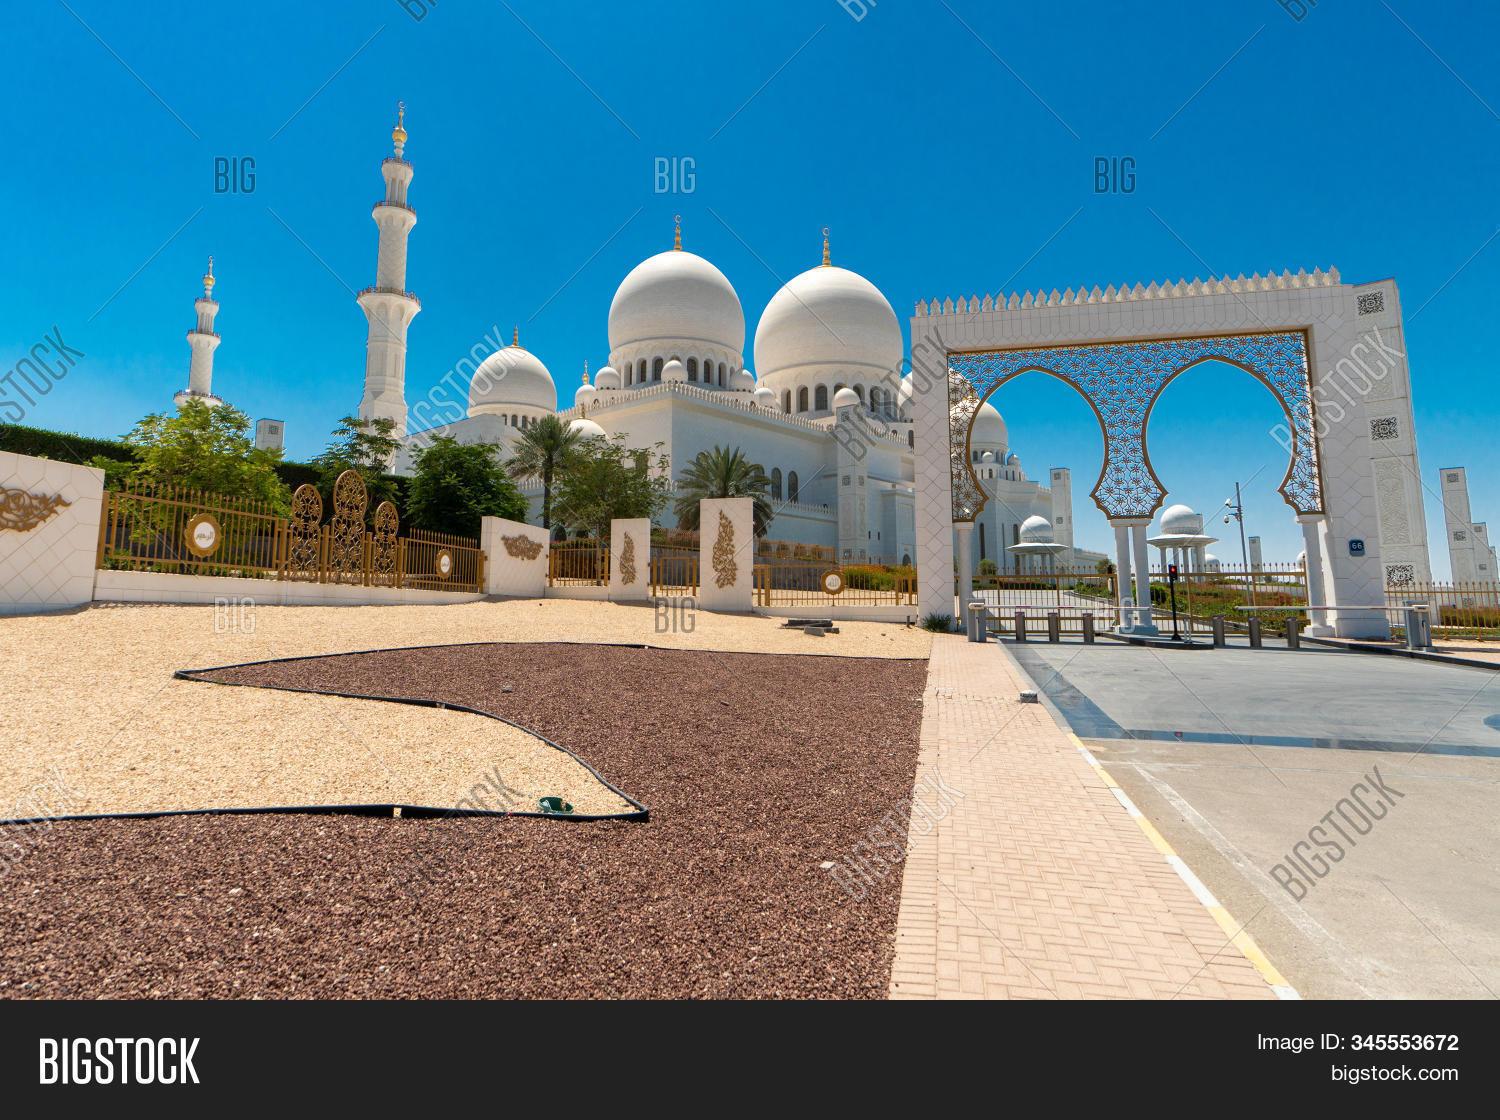 abu,allah,arab,arabia,arabian,arabic,architectural,architecture,blue,building,design,dhabi,dome,dubai,east,emirate,famous,grand,gulf,holy,islam,islamic,art,landmark,marble,masterpiece,middle,minaret,monument,mosque,muslim,outside,pillars,pray,religion,religious,sheikh,zayed,temple,tourism,tourist,travel,travelling,uae,united,white,worship,worshiping